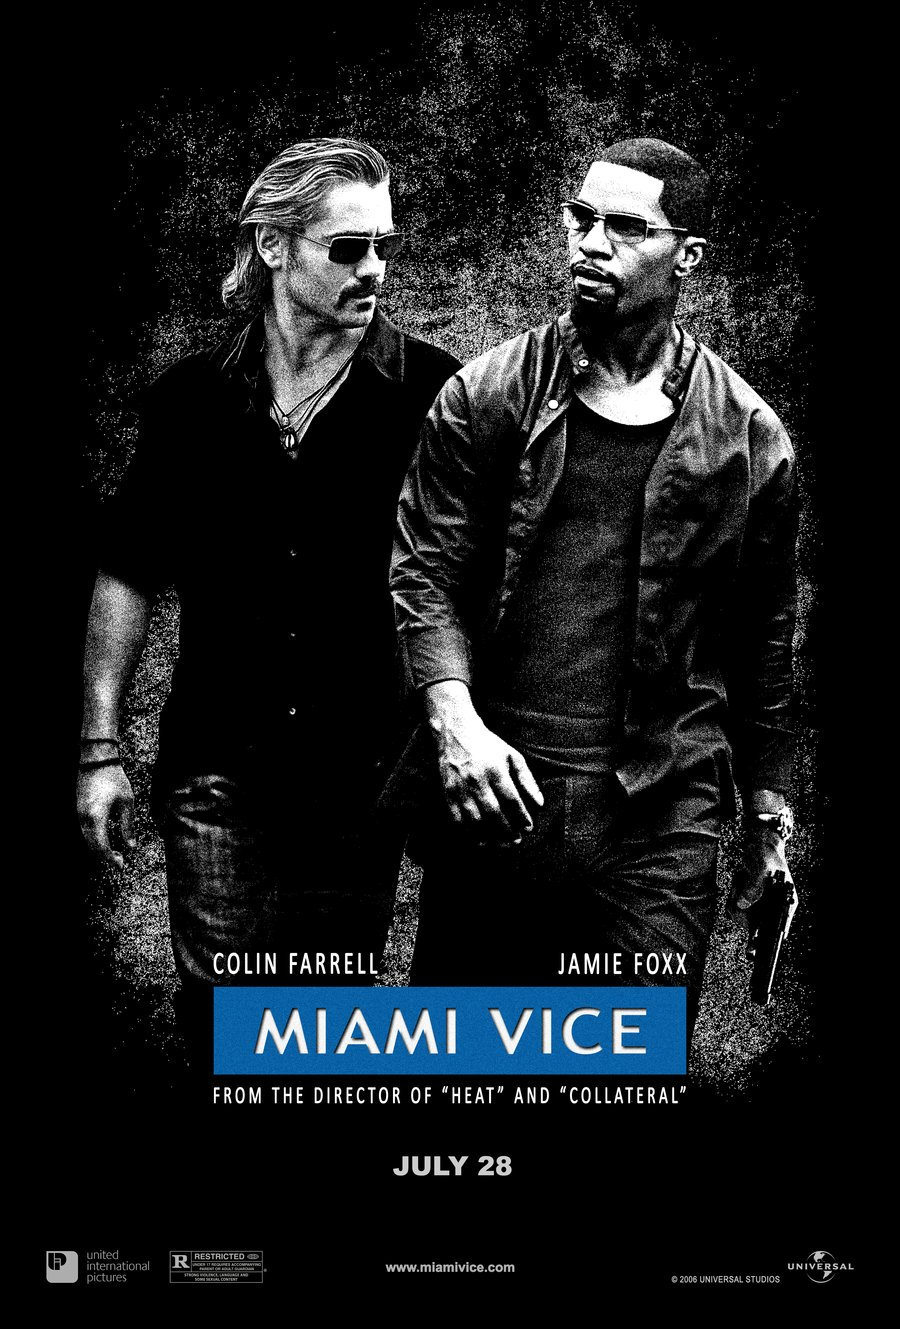 Miami Vice released in July 2006 - HeadStuff.org